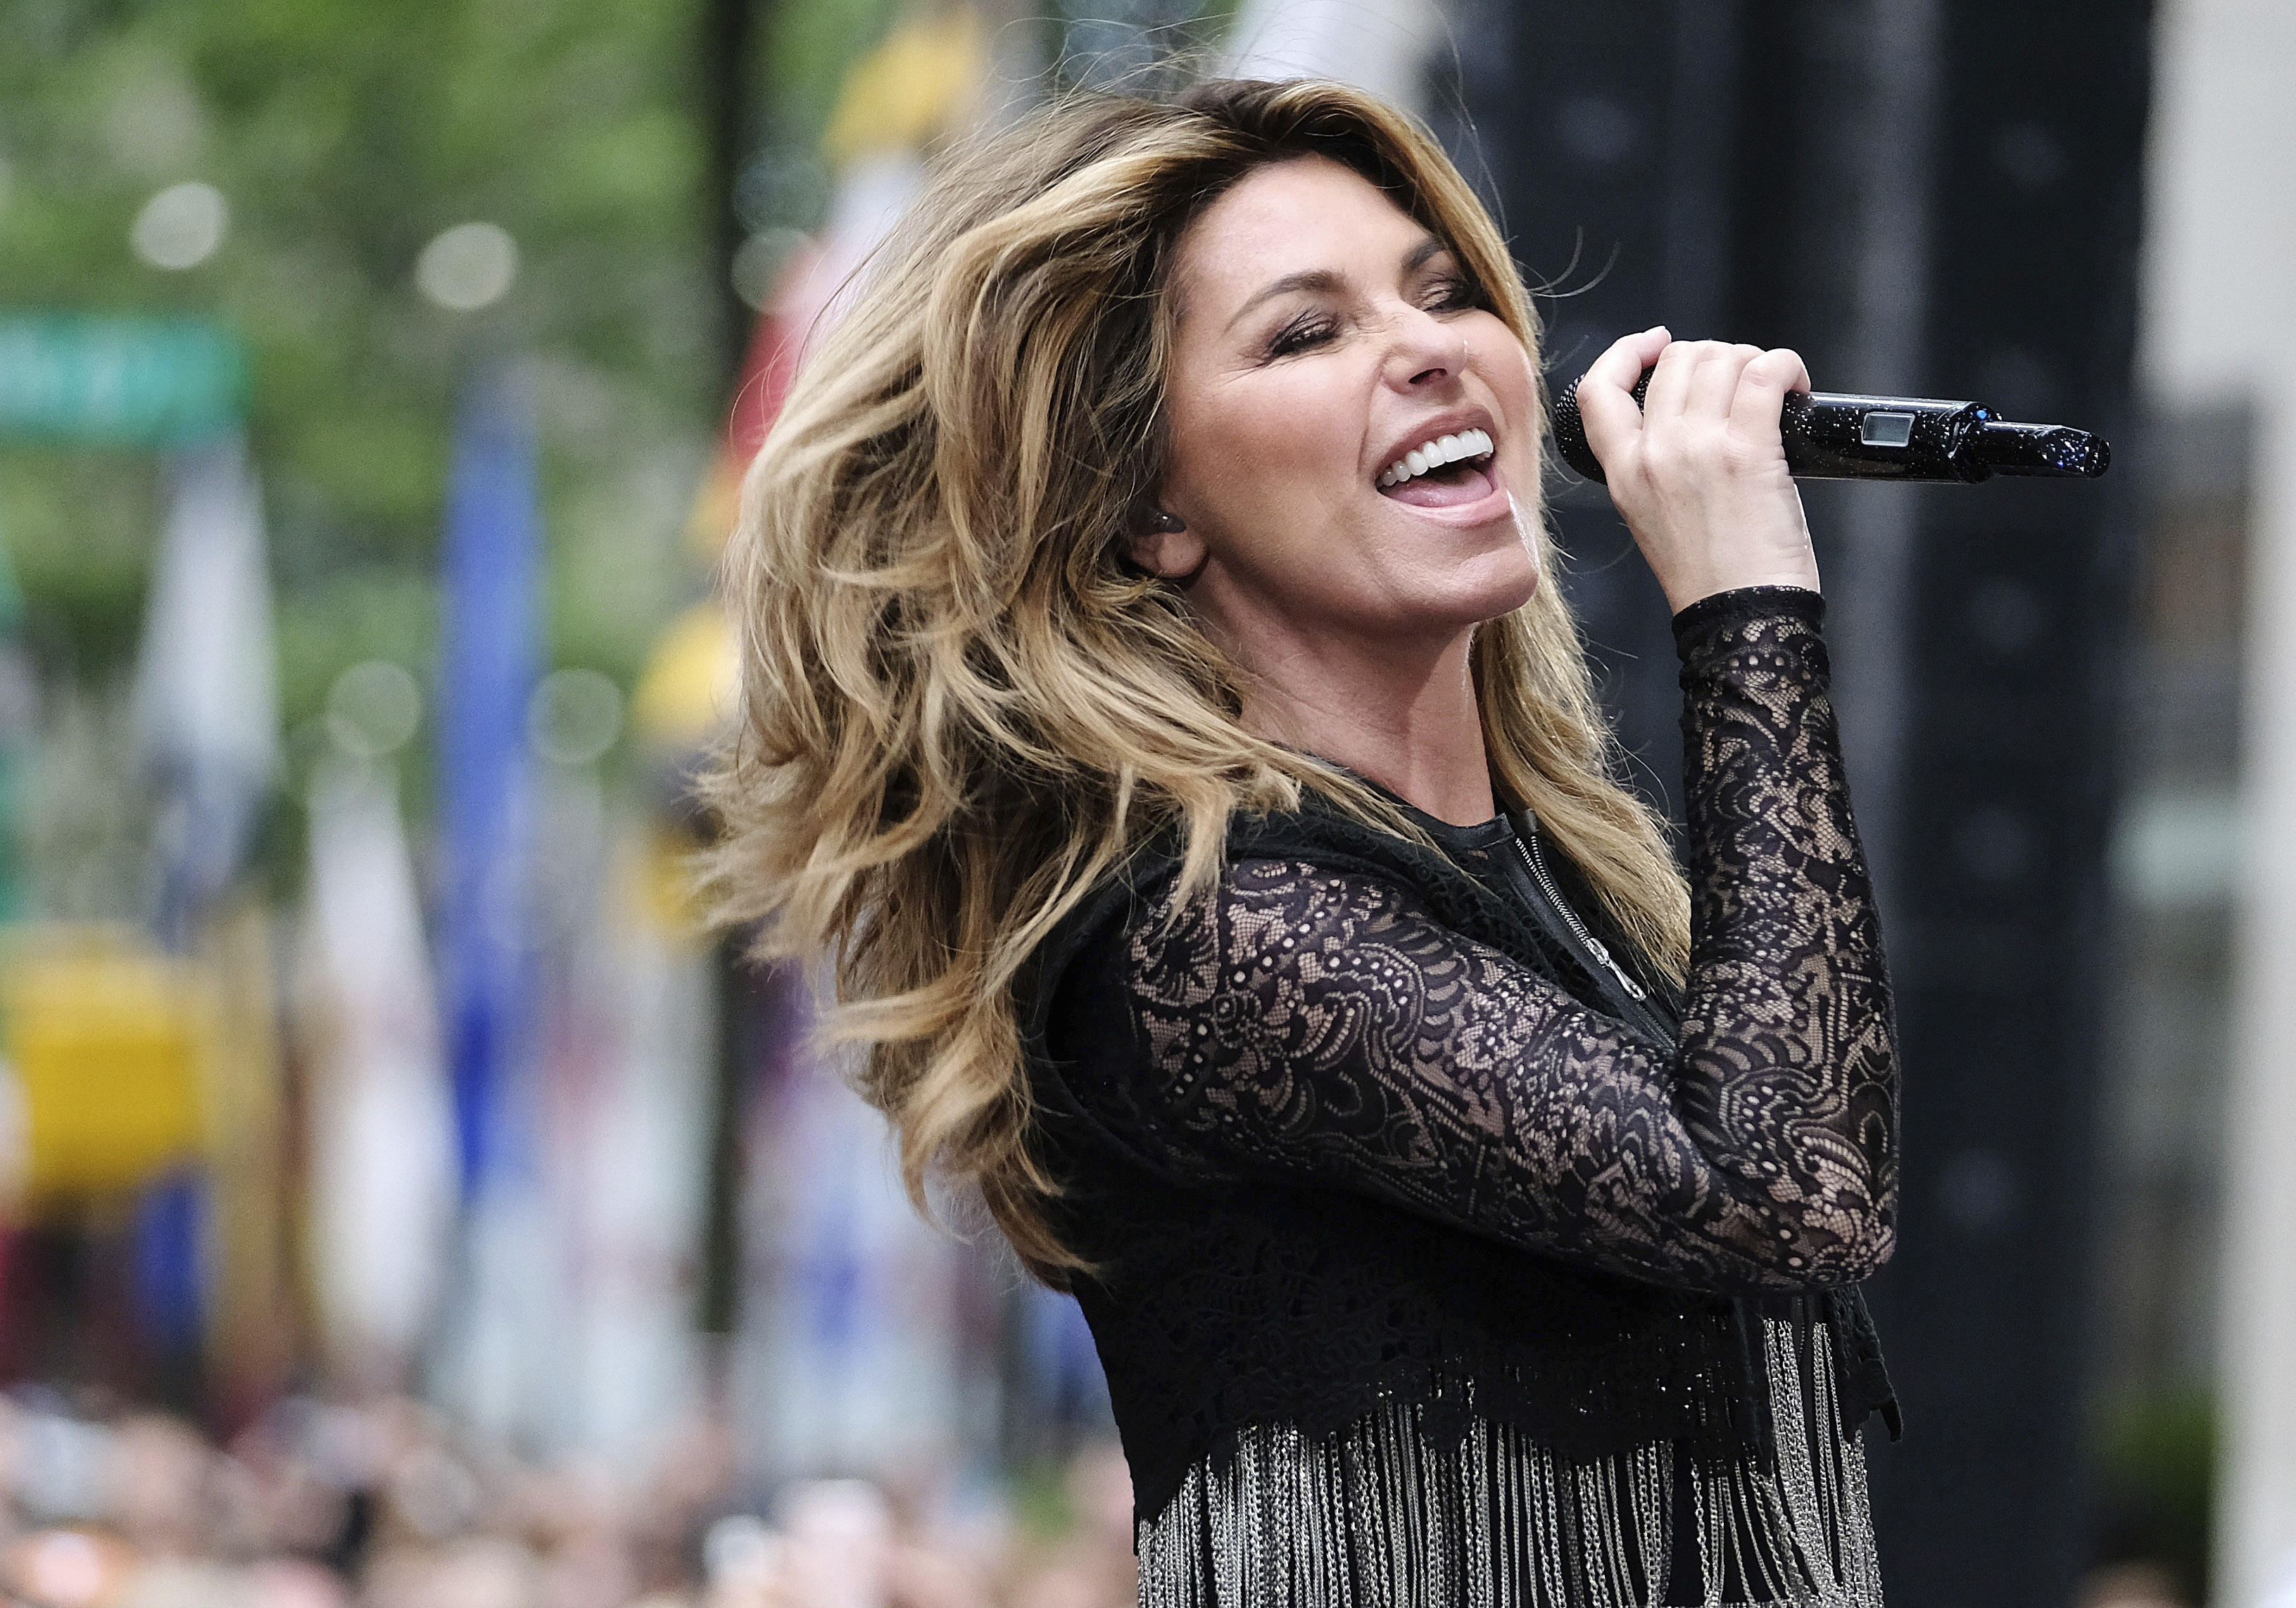 Mutt Lange And Marie Anne Thiebaud Wedding.Shania Twain Drops Her Ex Husband From Her Life After He Cheated On